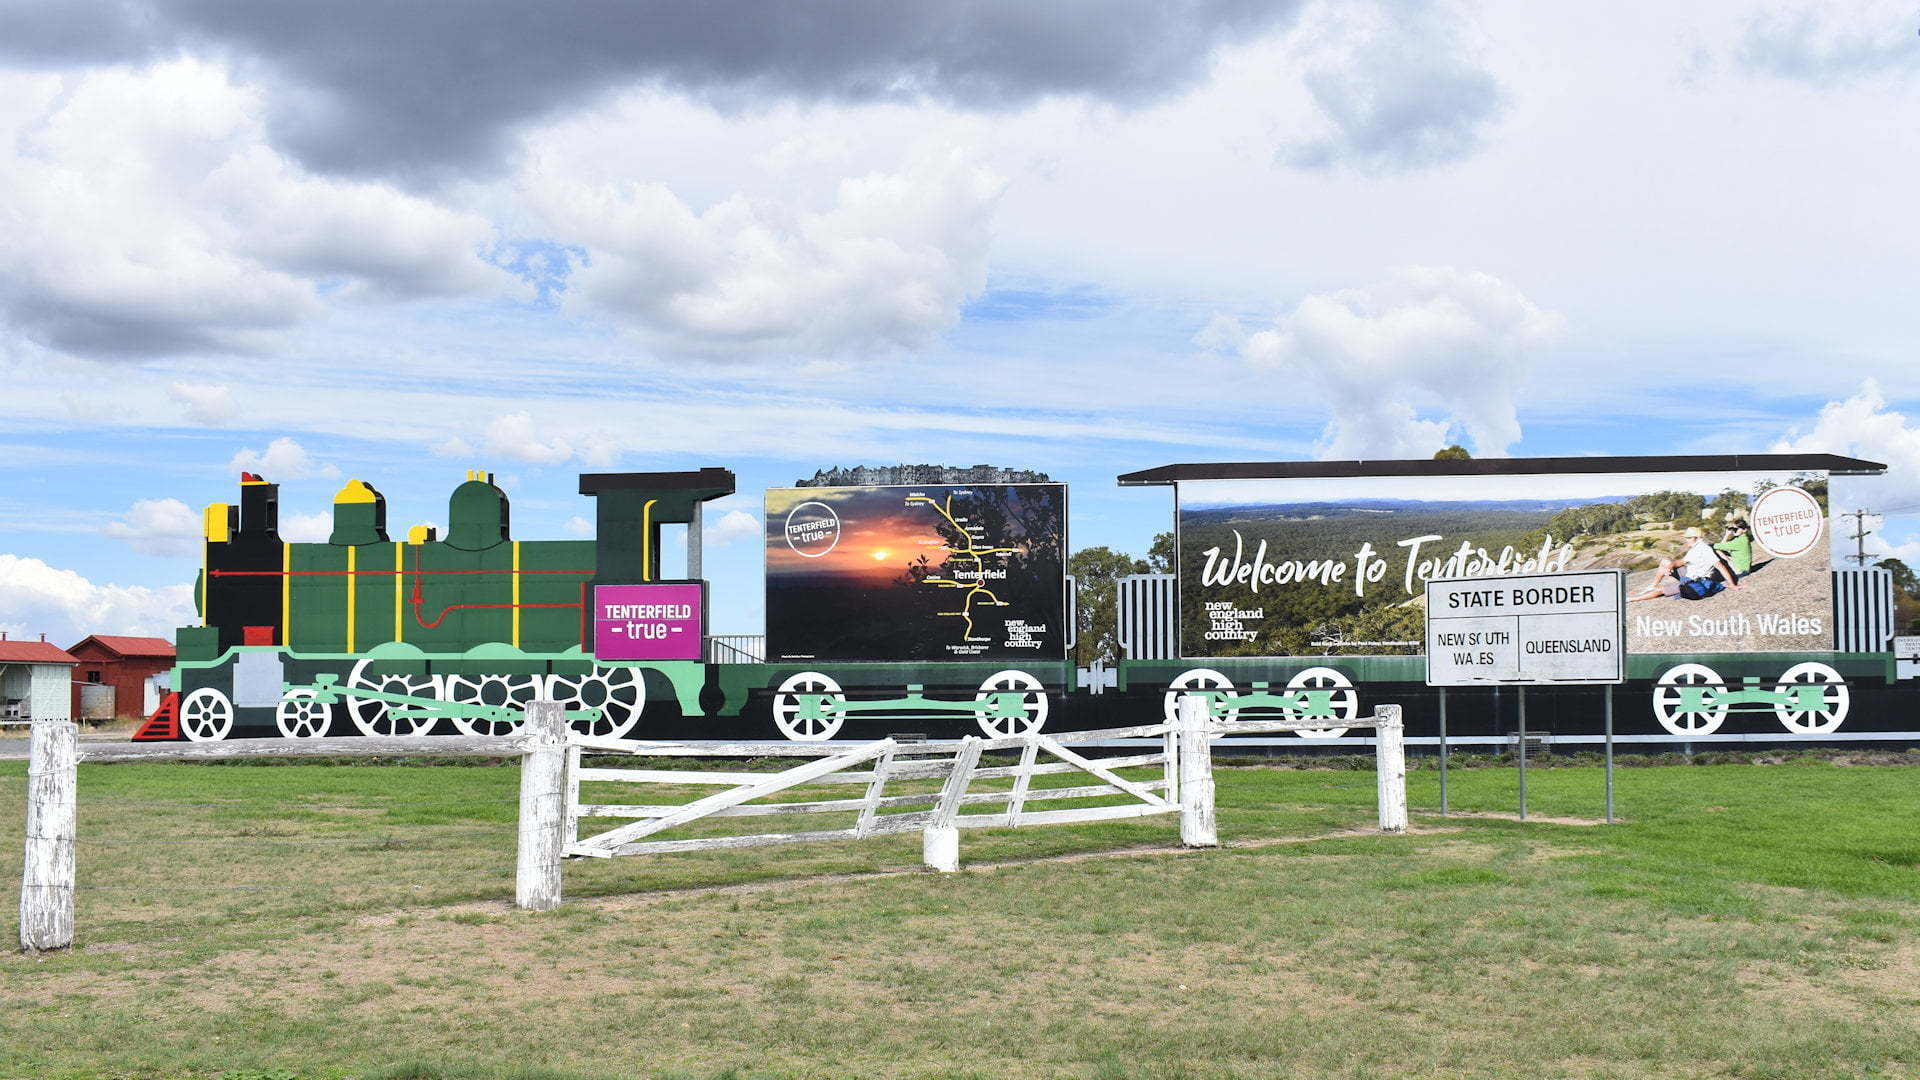 Billboard in the shape of a train, white wooden post fence, sign showing the border of Queensland and New South Wales